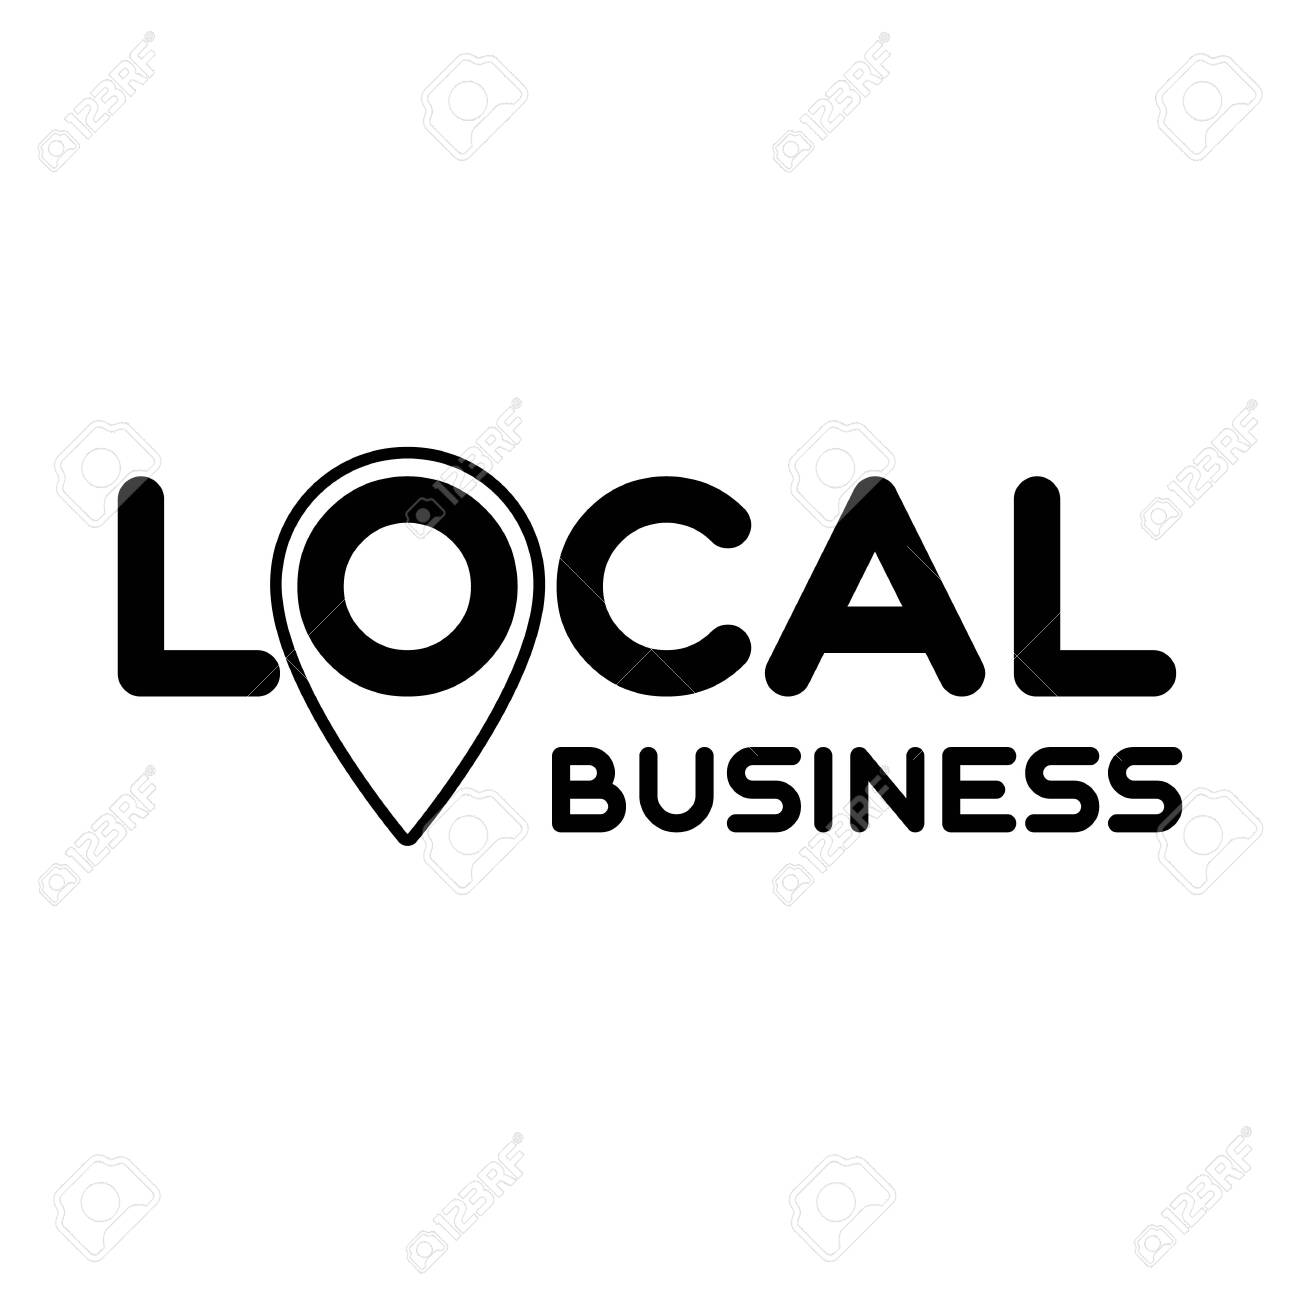 Symbol of local production, business, company. Template for poster, banner, signboard, web, card, sticker. Business locally. - 149663392